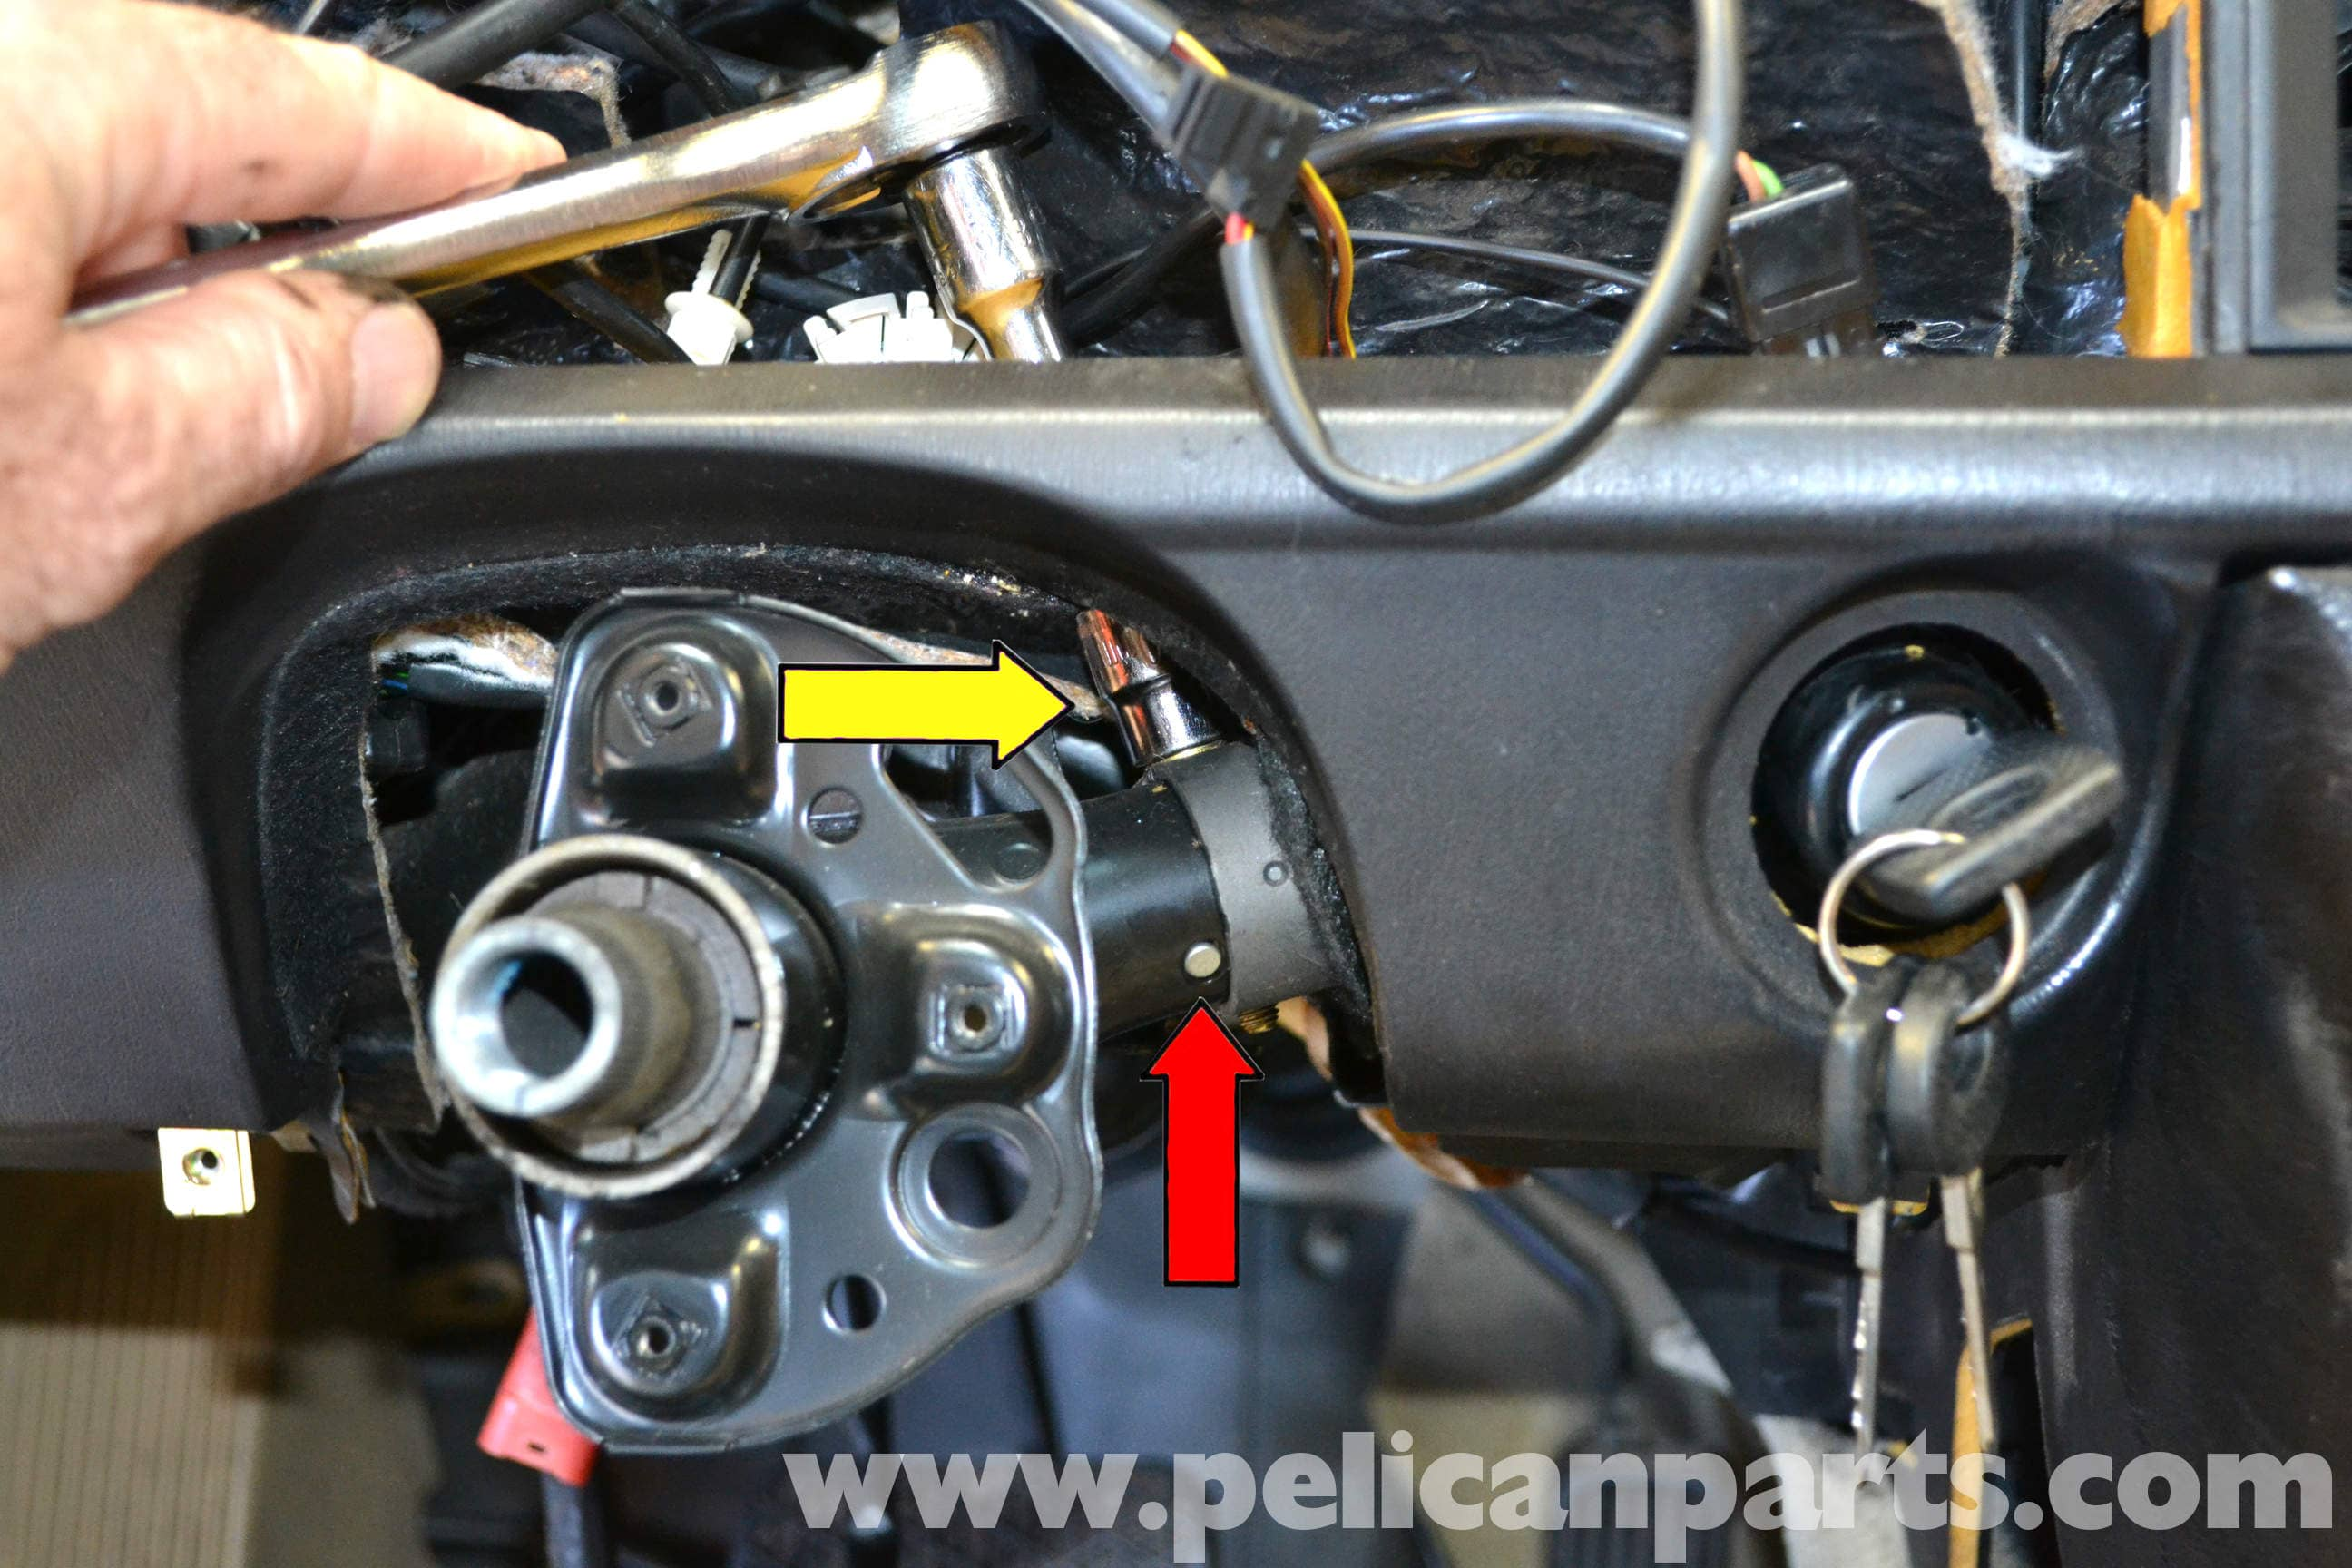 Mercedes Benz 190e Ignition Switch And Lock Replacement